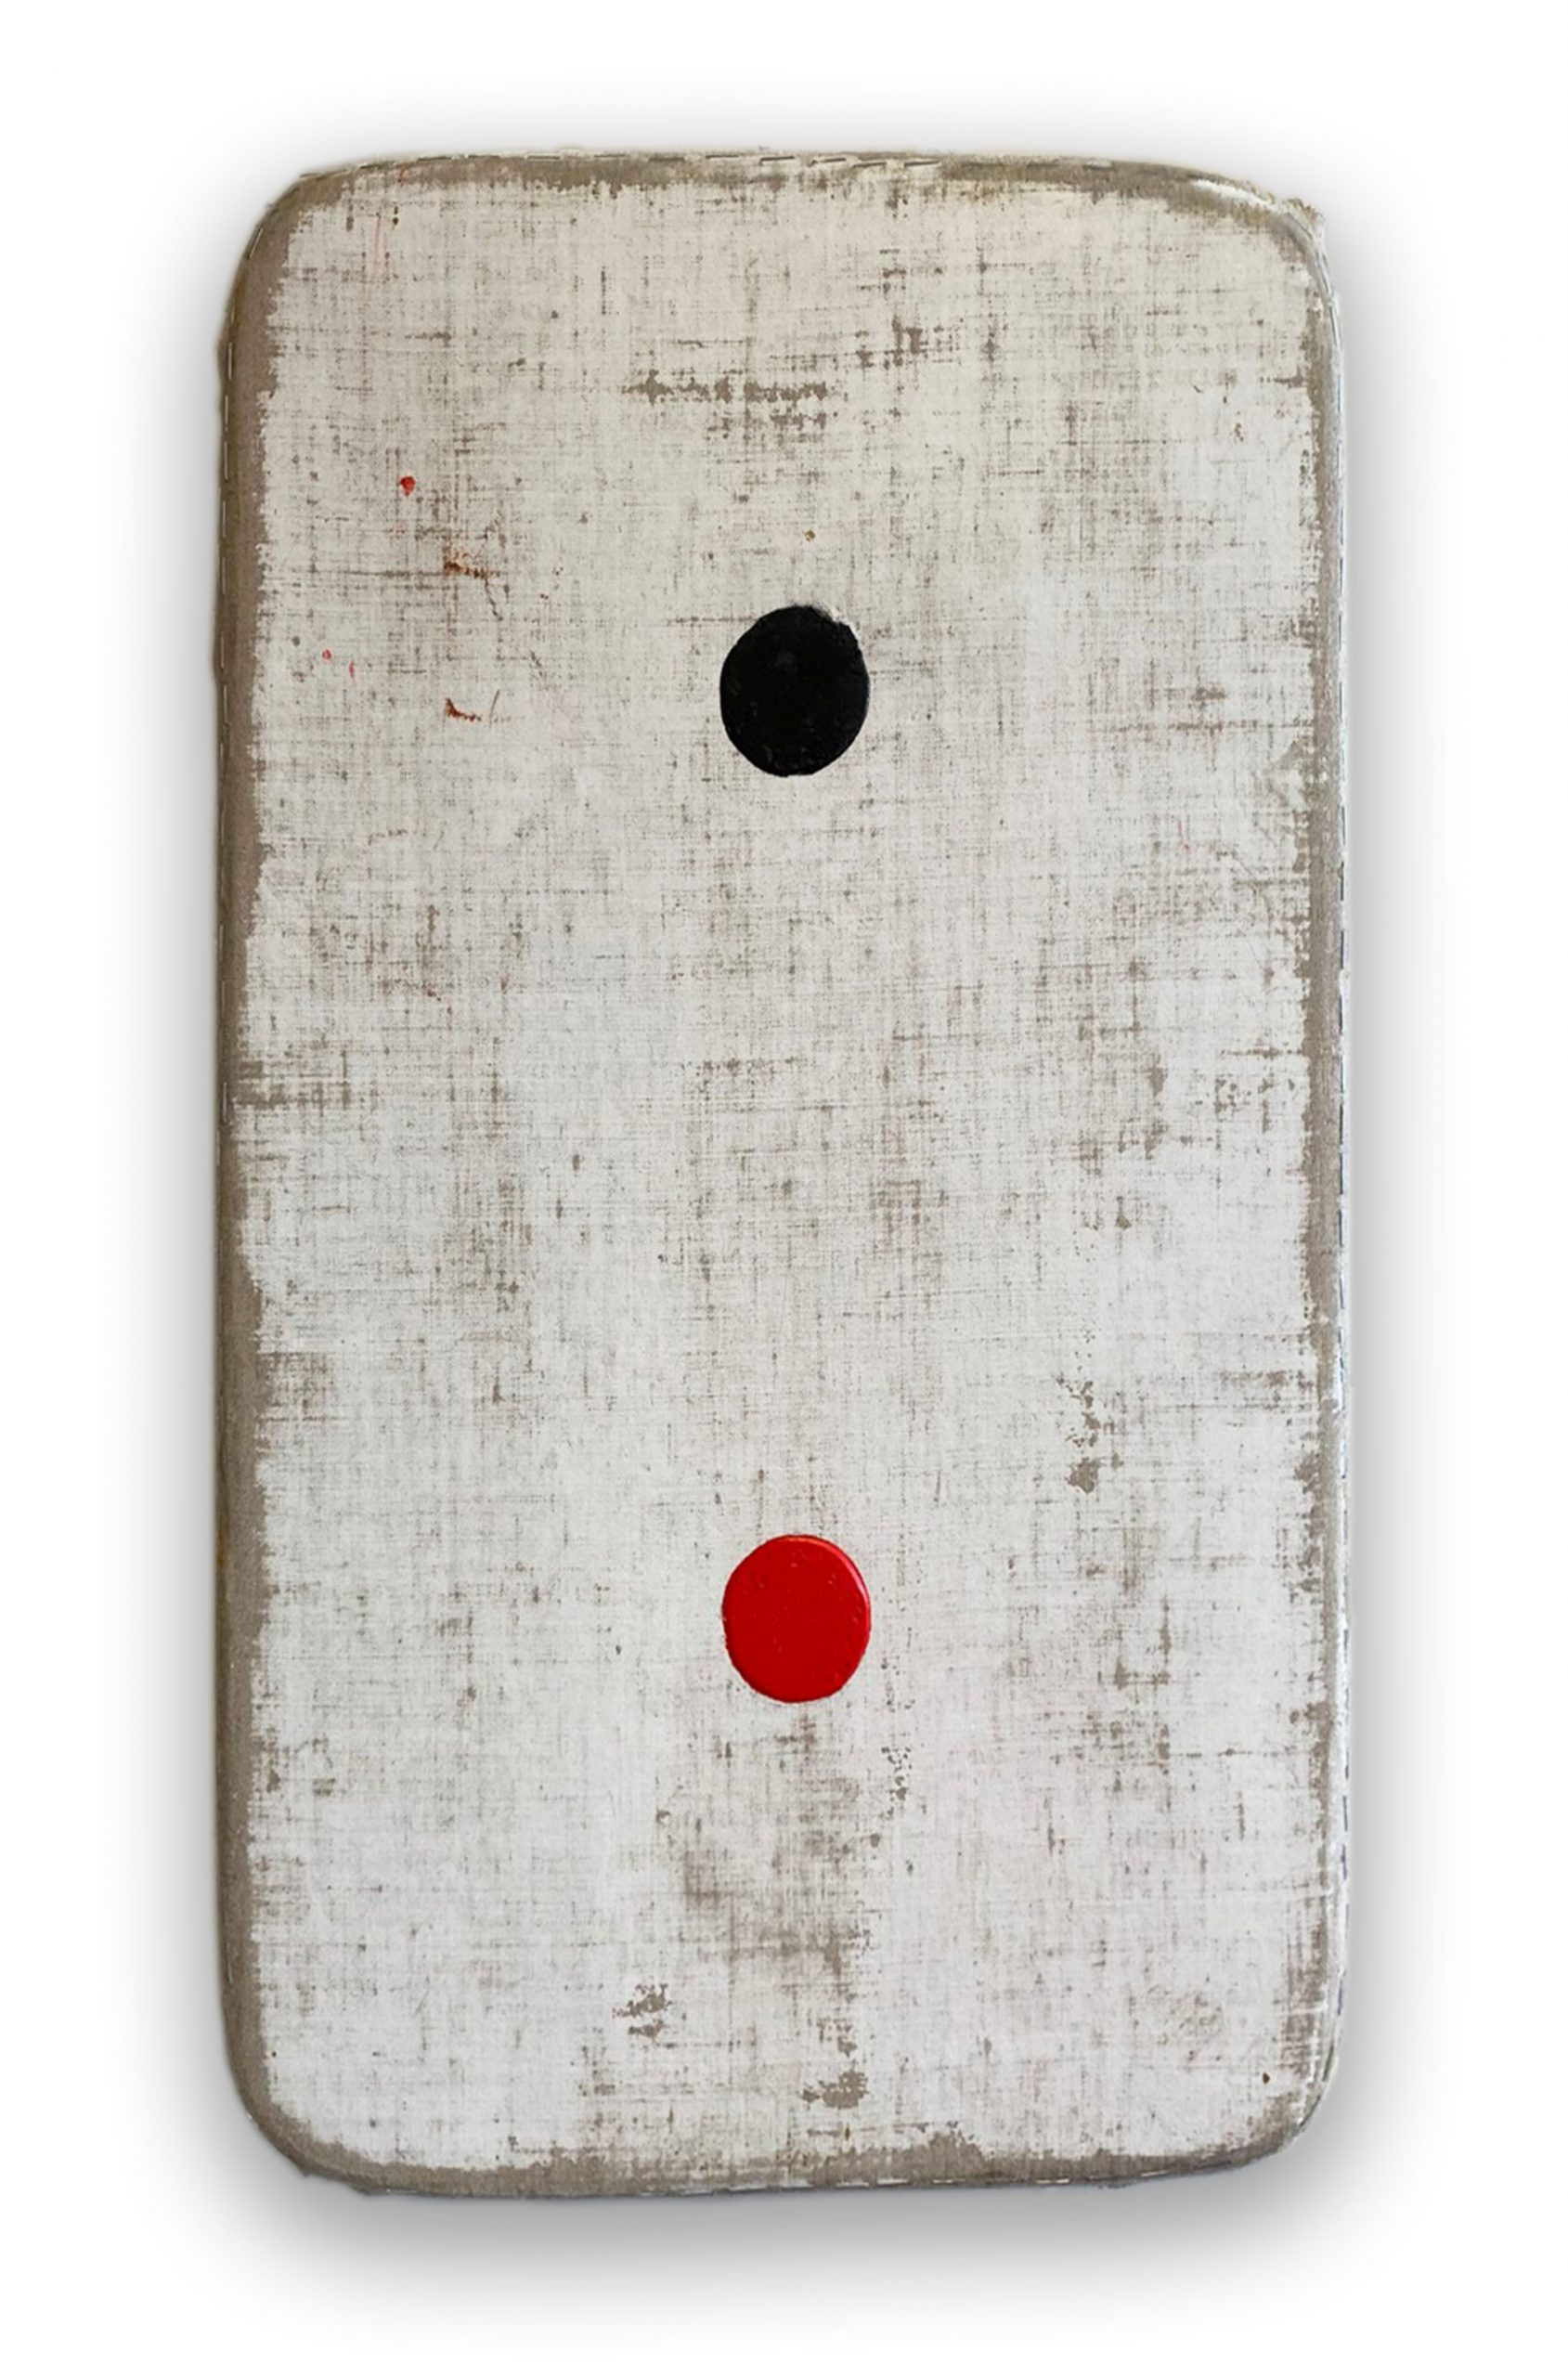 2020 Acrylic on linen on wood 24 x 15 x 3 inches (61 x 38 x 7.6 cm) - Marc Straus Gallery